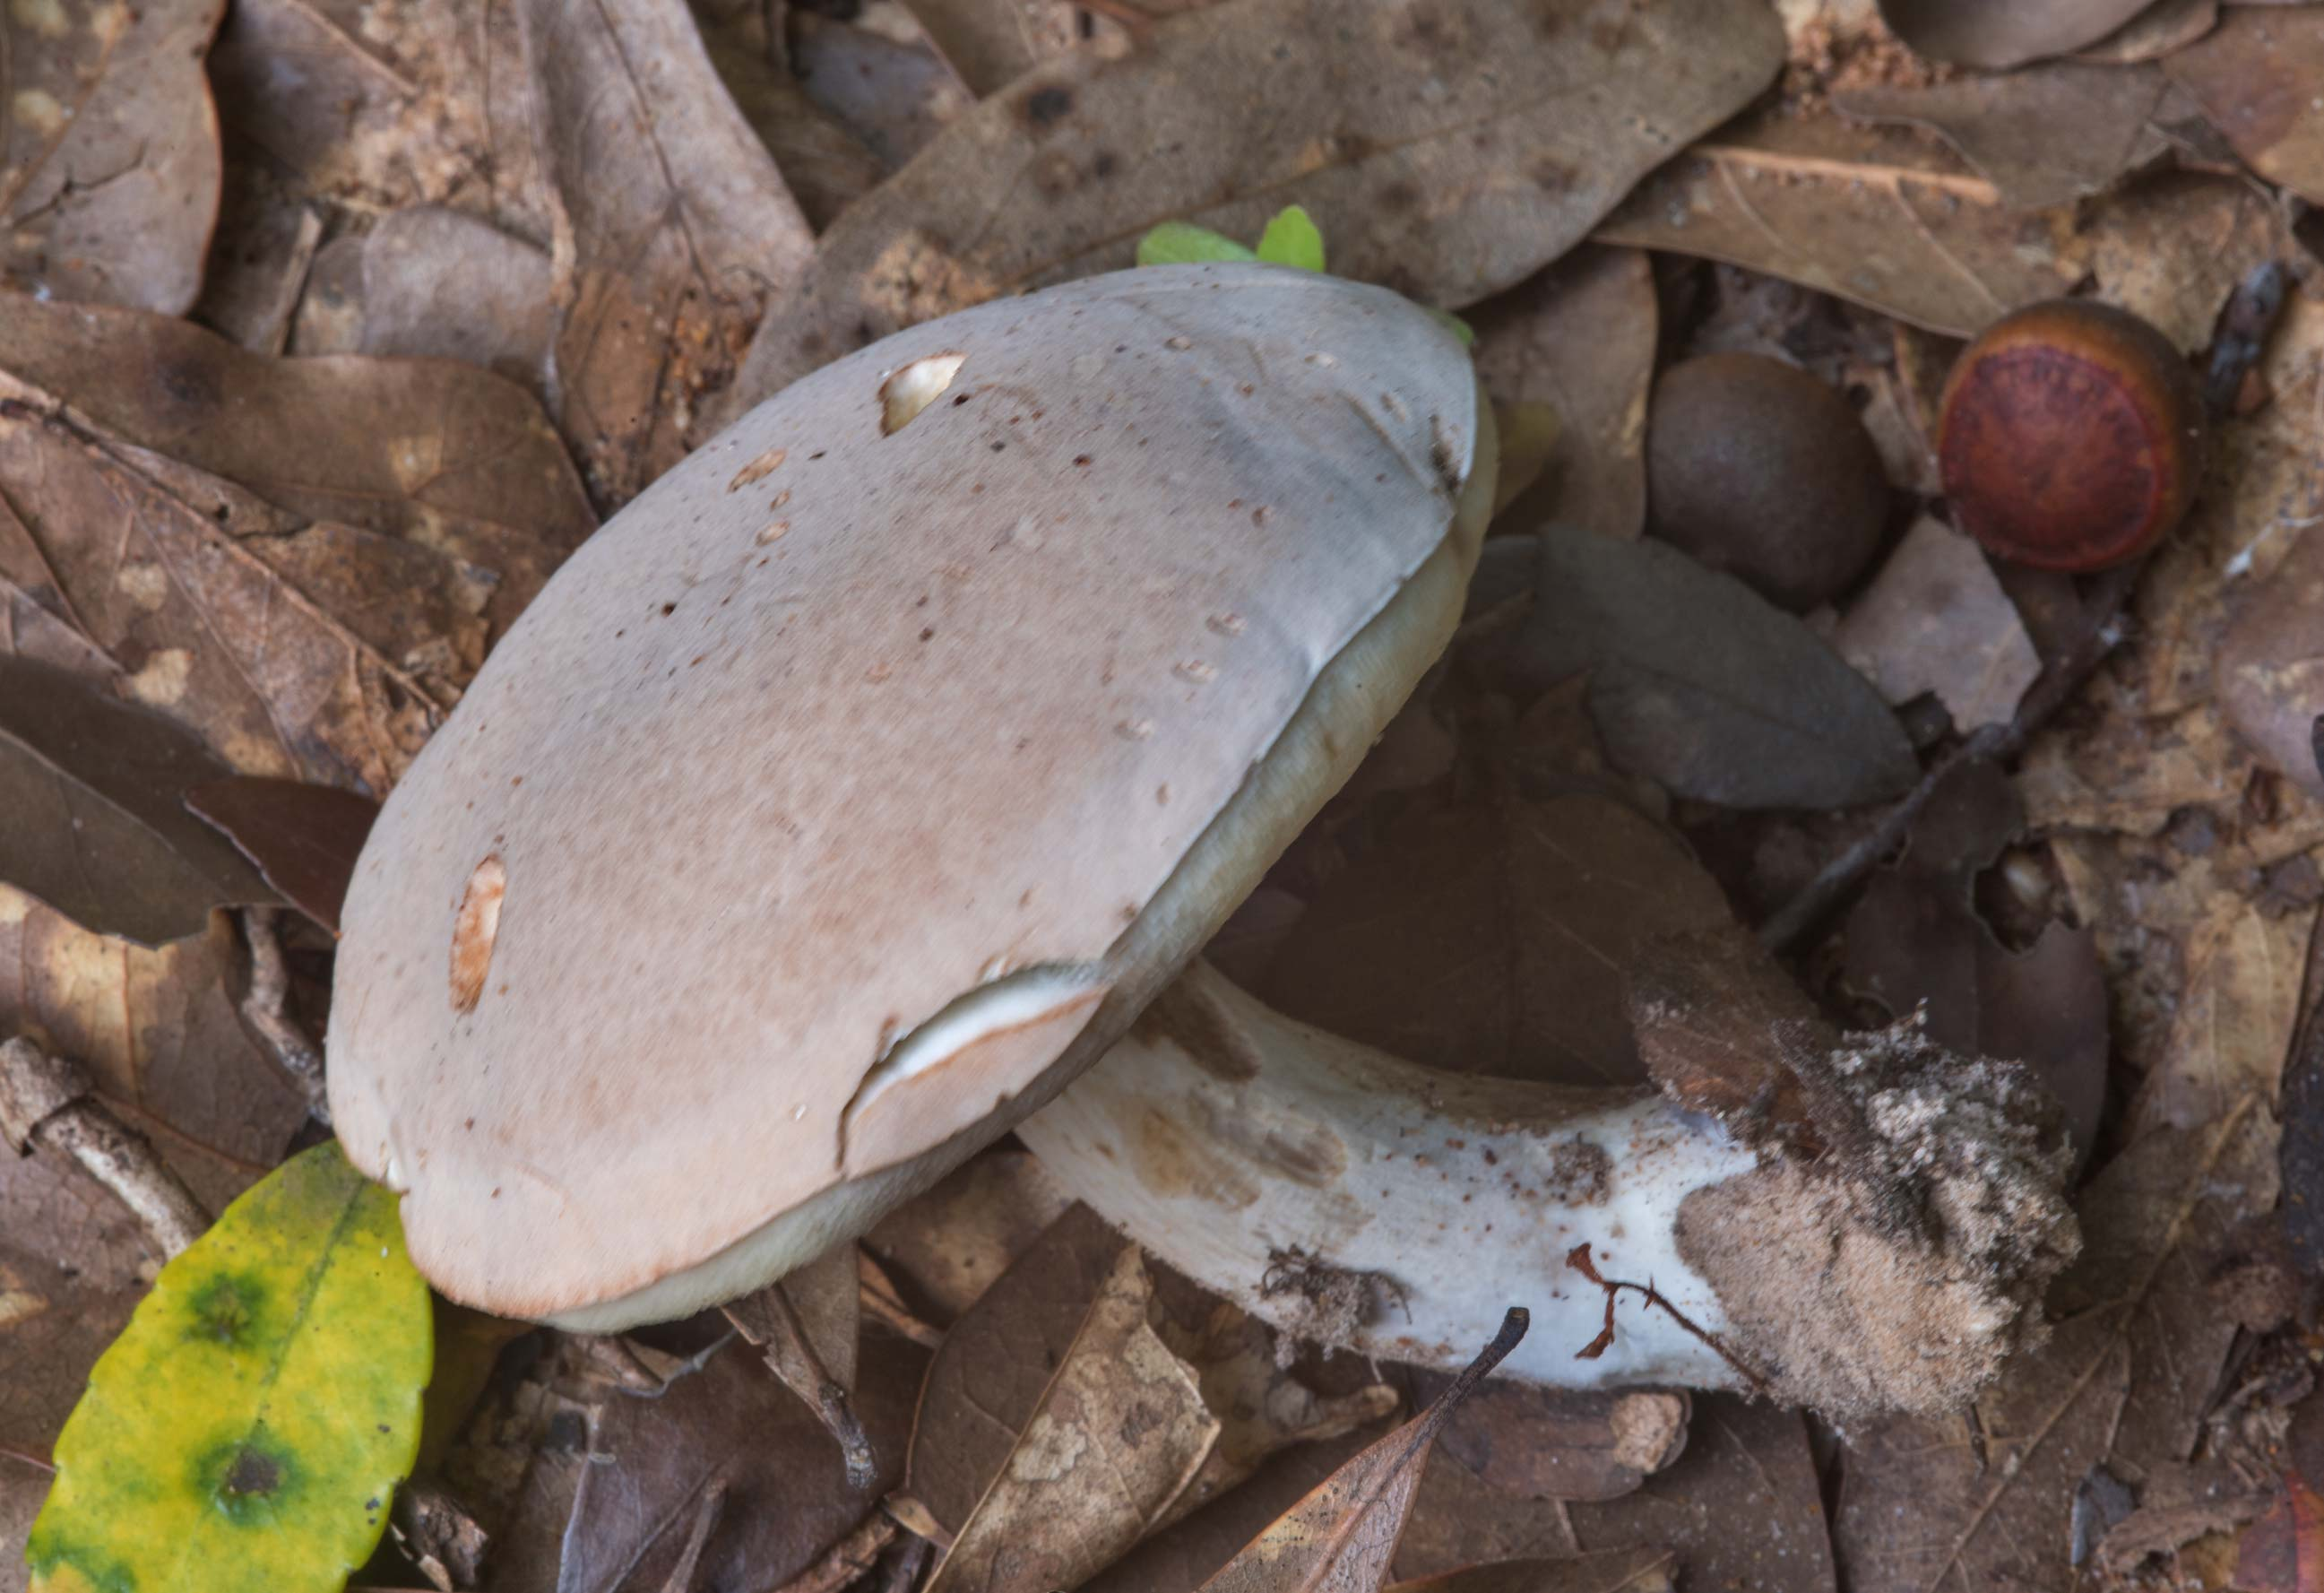 Pale bolete mushroom (Boletus pallidus) in Lick Creek Park. College Station, Texas